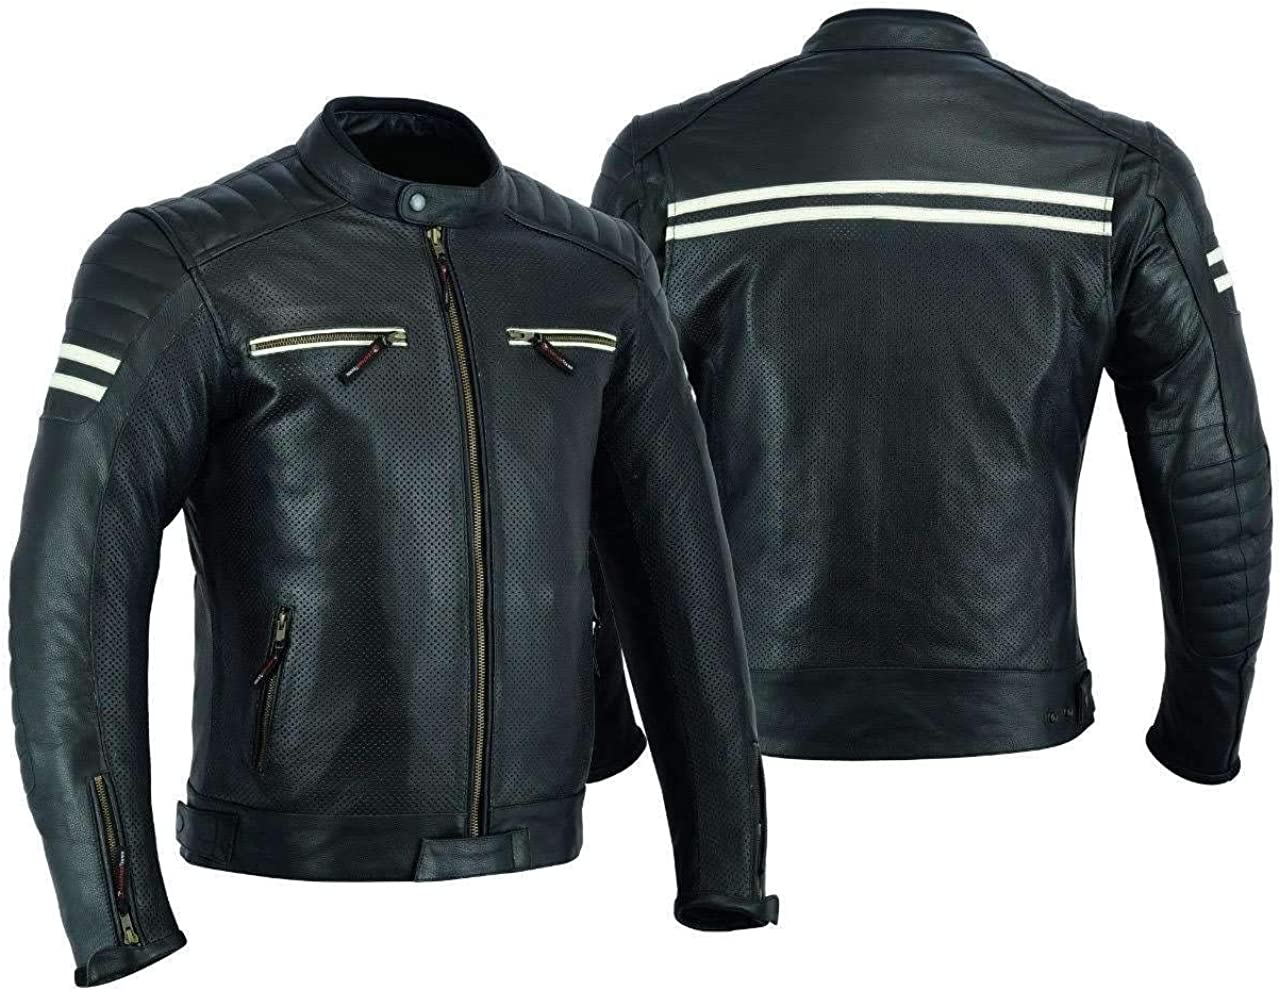 MOTORCYCLE Cheap mail order shopping 5 ☆ very popular LEATHER JACKET FOR MEN PROTE RIDING BIKERS ARMOR WITH